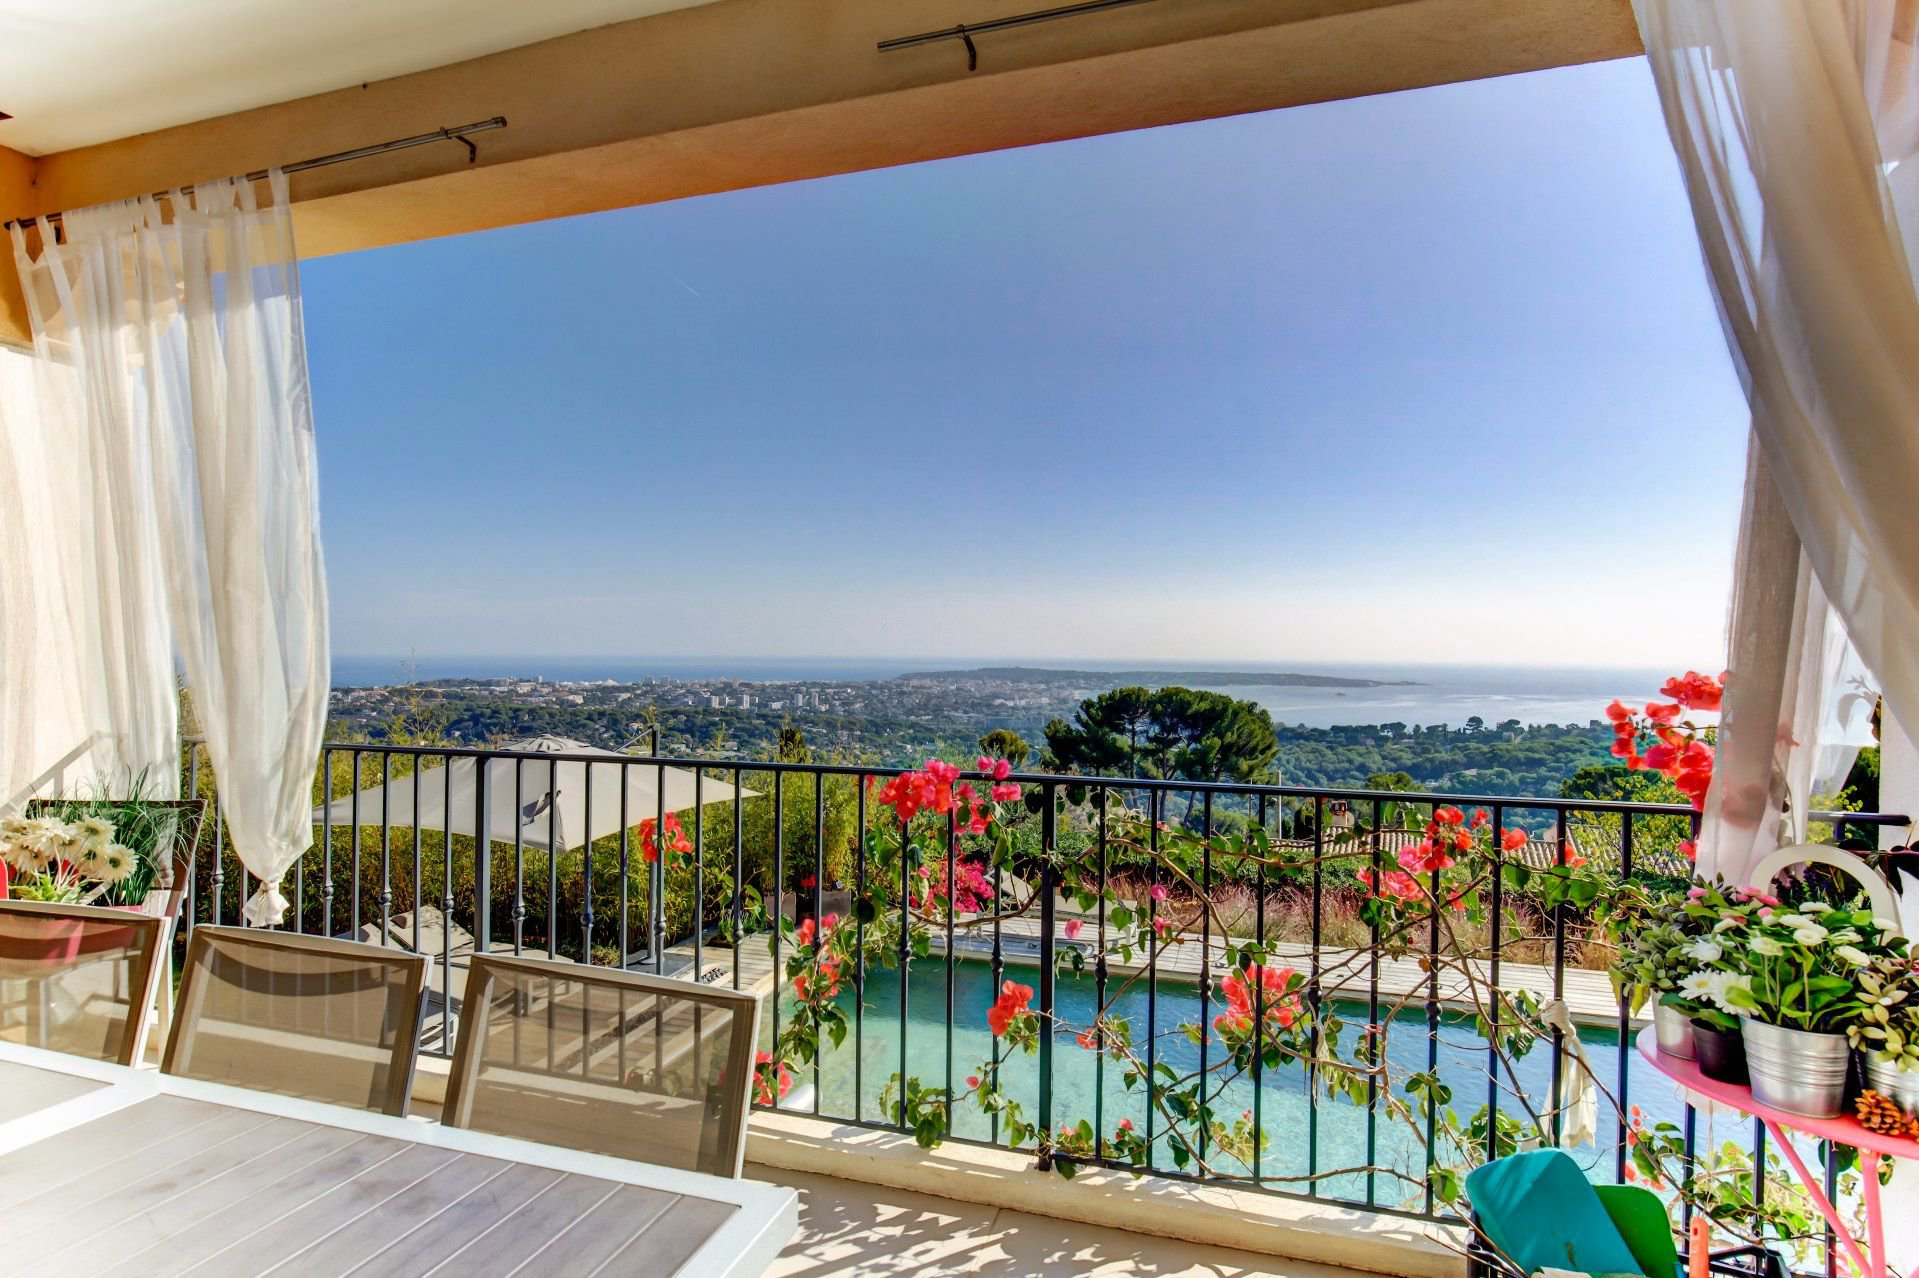 Near Cannes - New villa with stunning sea views